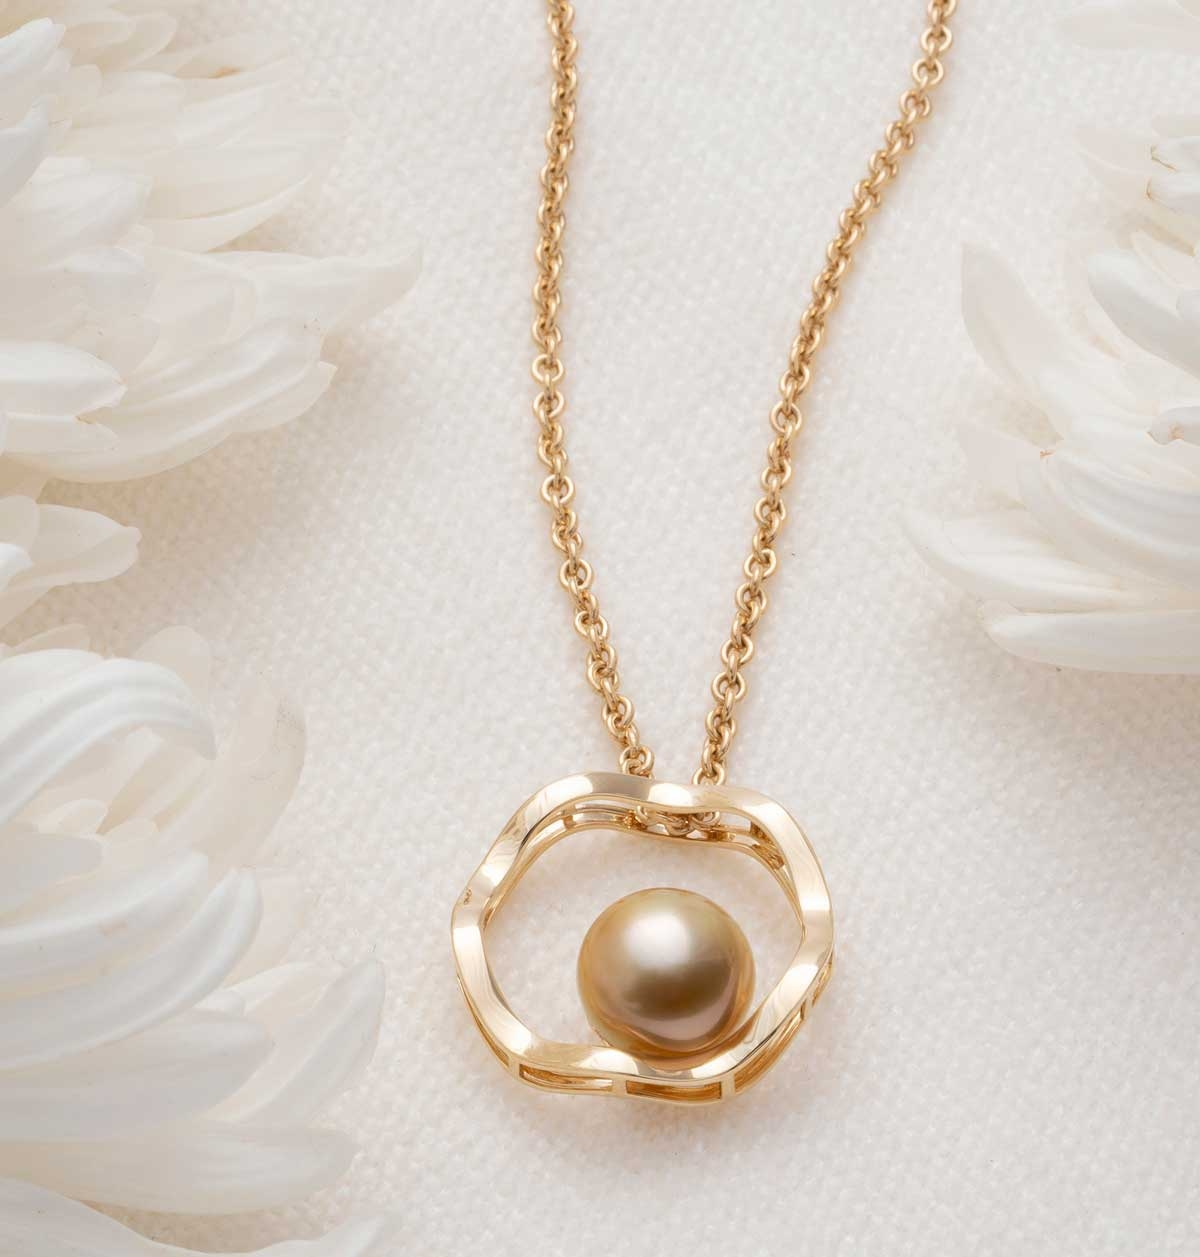 Jewelmer Golden South Sea Pearls